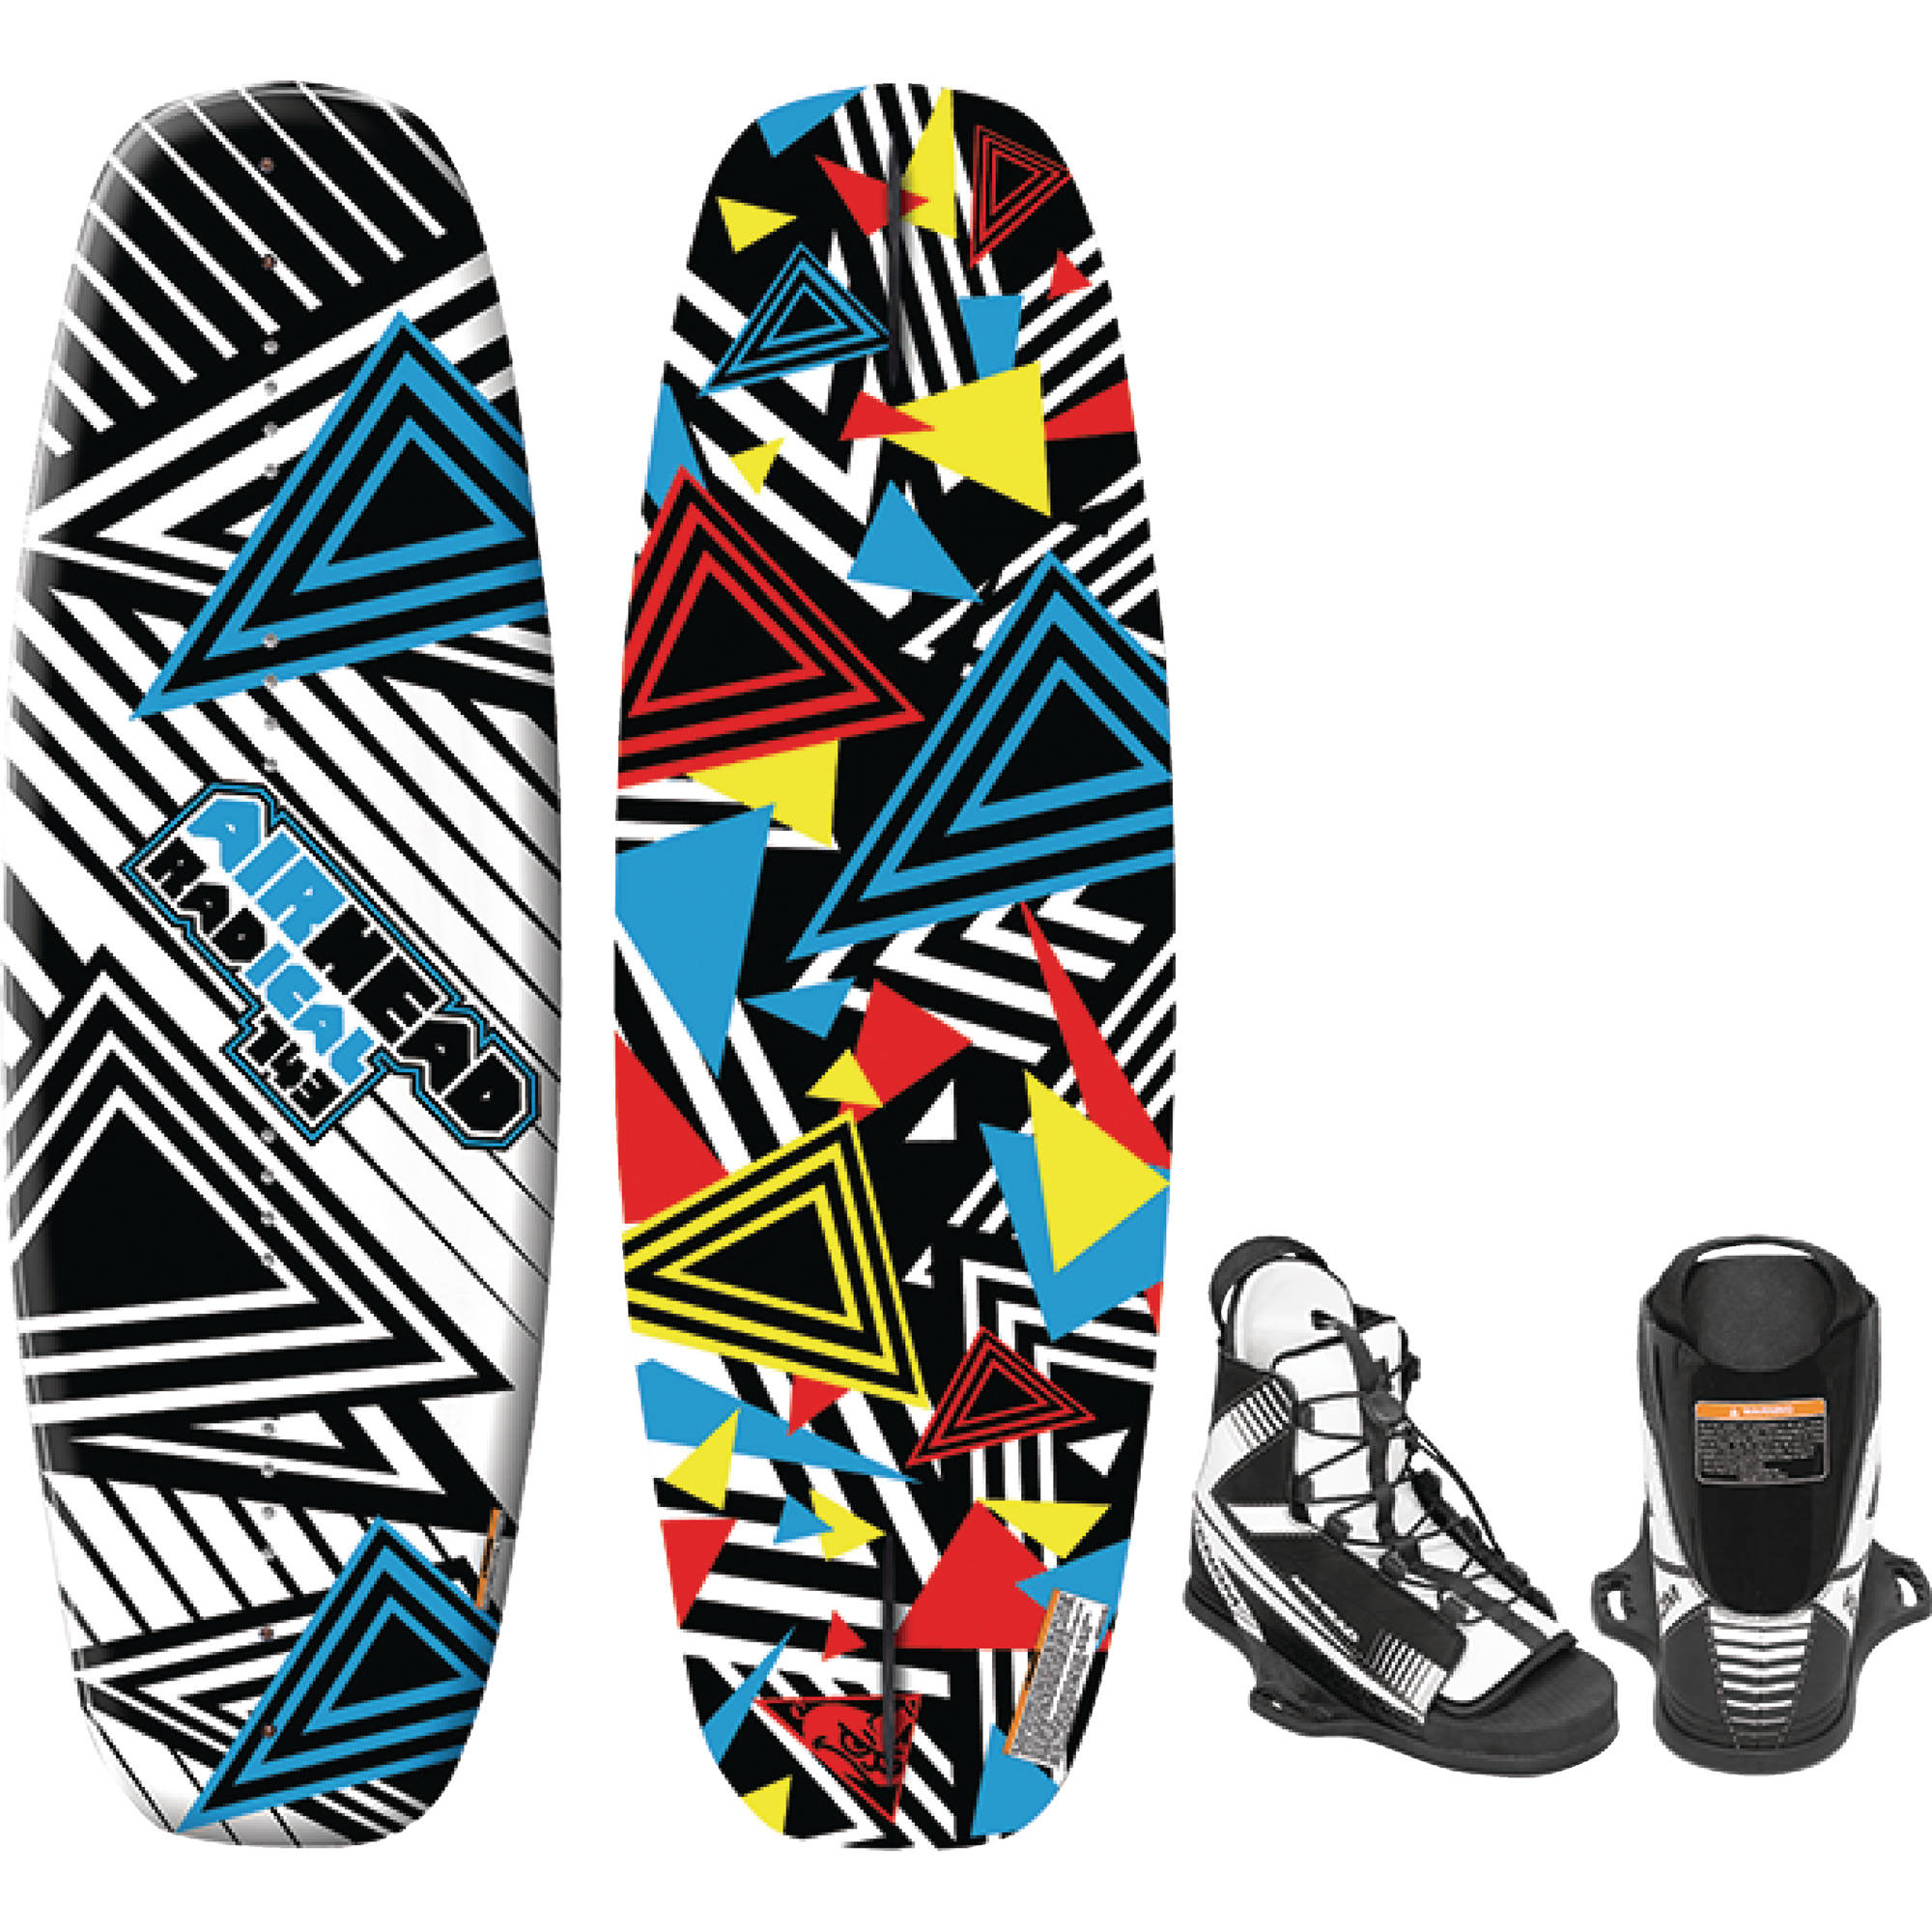 Airhead AWH-3020 RADICAL Wakeboard for Riders 150 lbs and up, Venom Bindings Size 9 to 12 by Kwik Tek